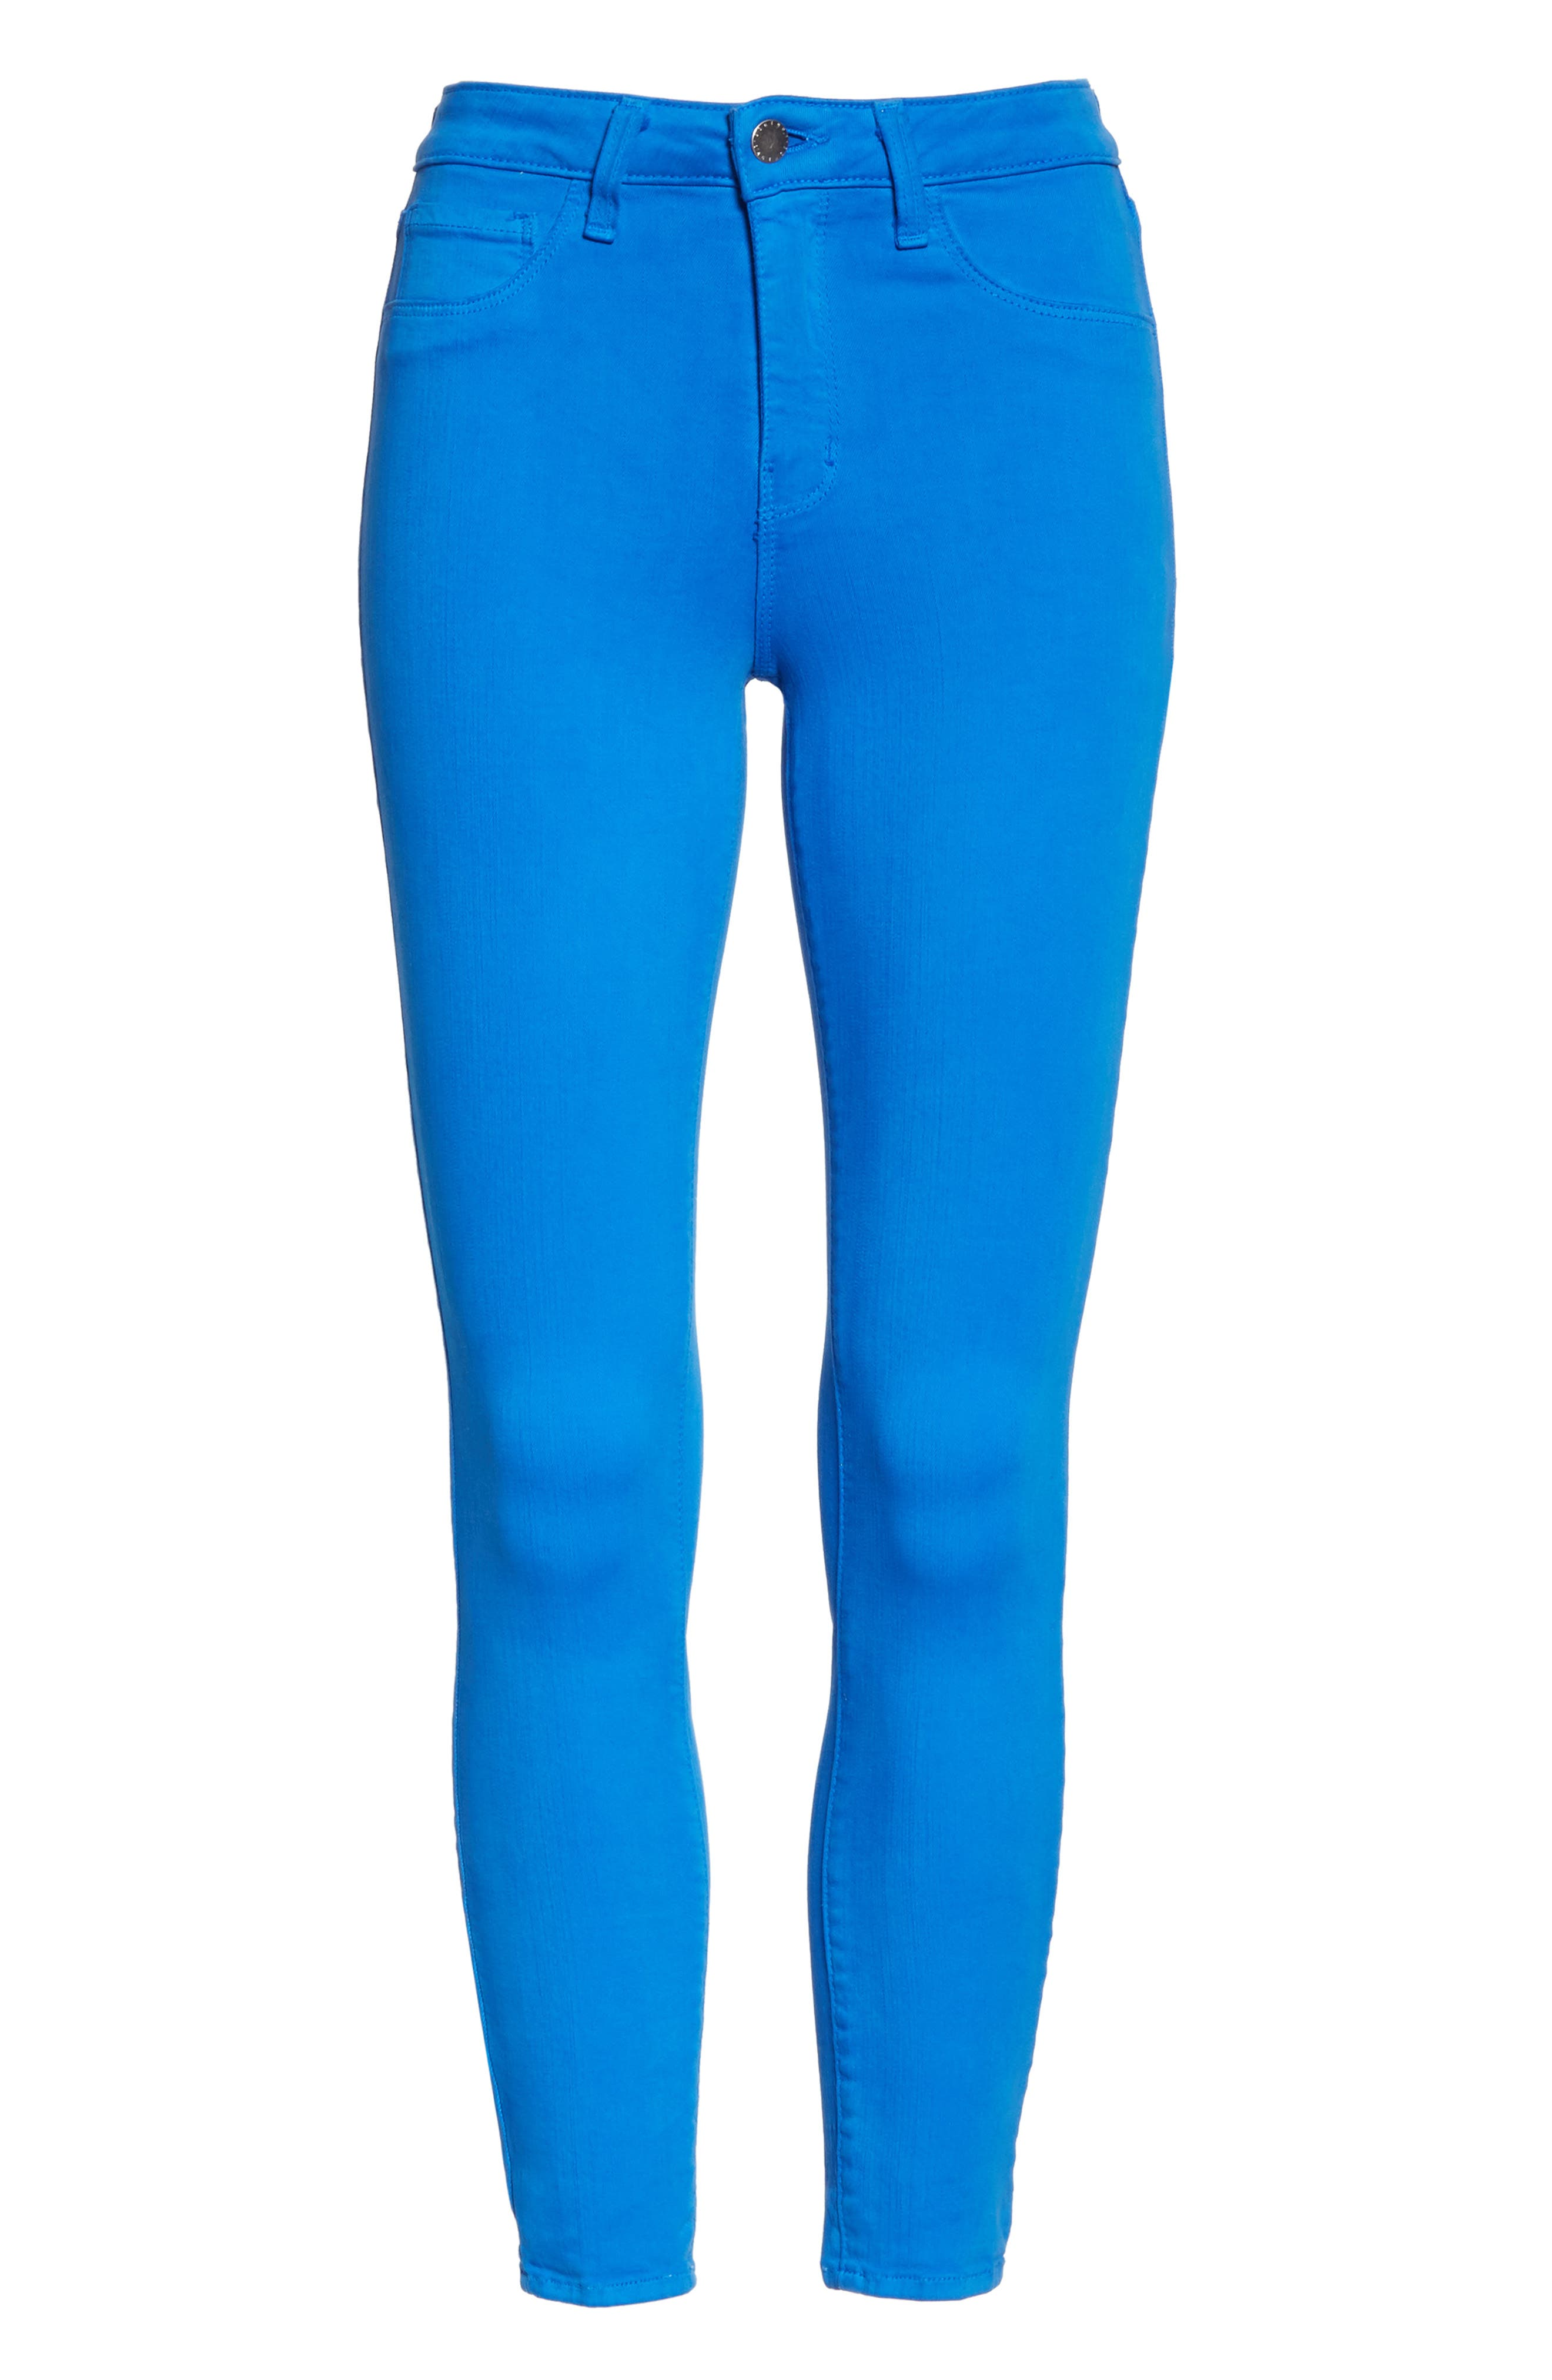 L'AGENCE, High Waist Skinny Ankle Jeans, Alternate thumbnail 7, color, RIVIERA BLUE